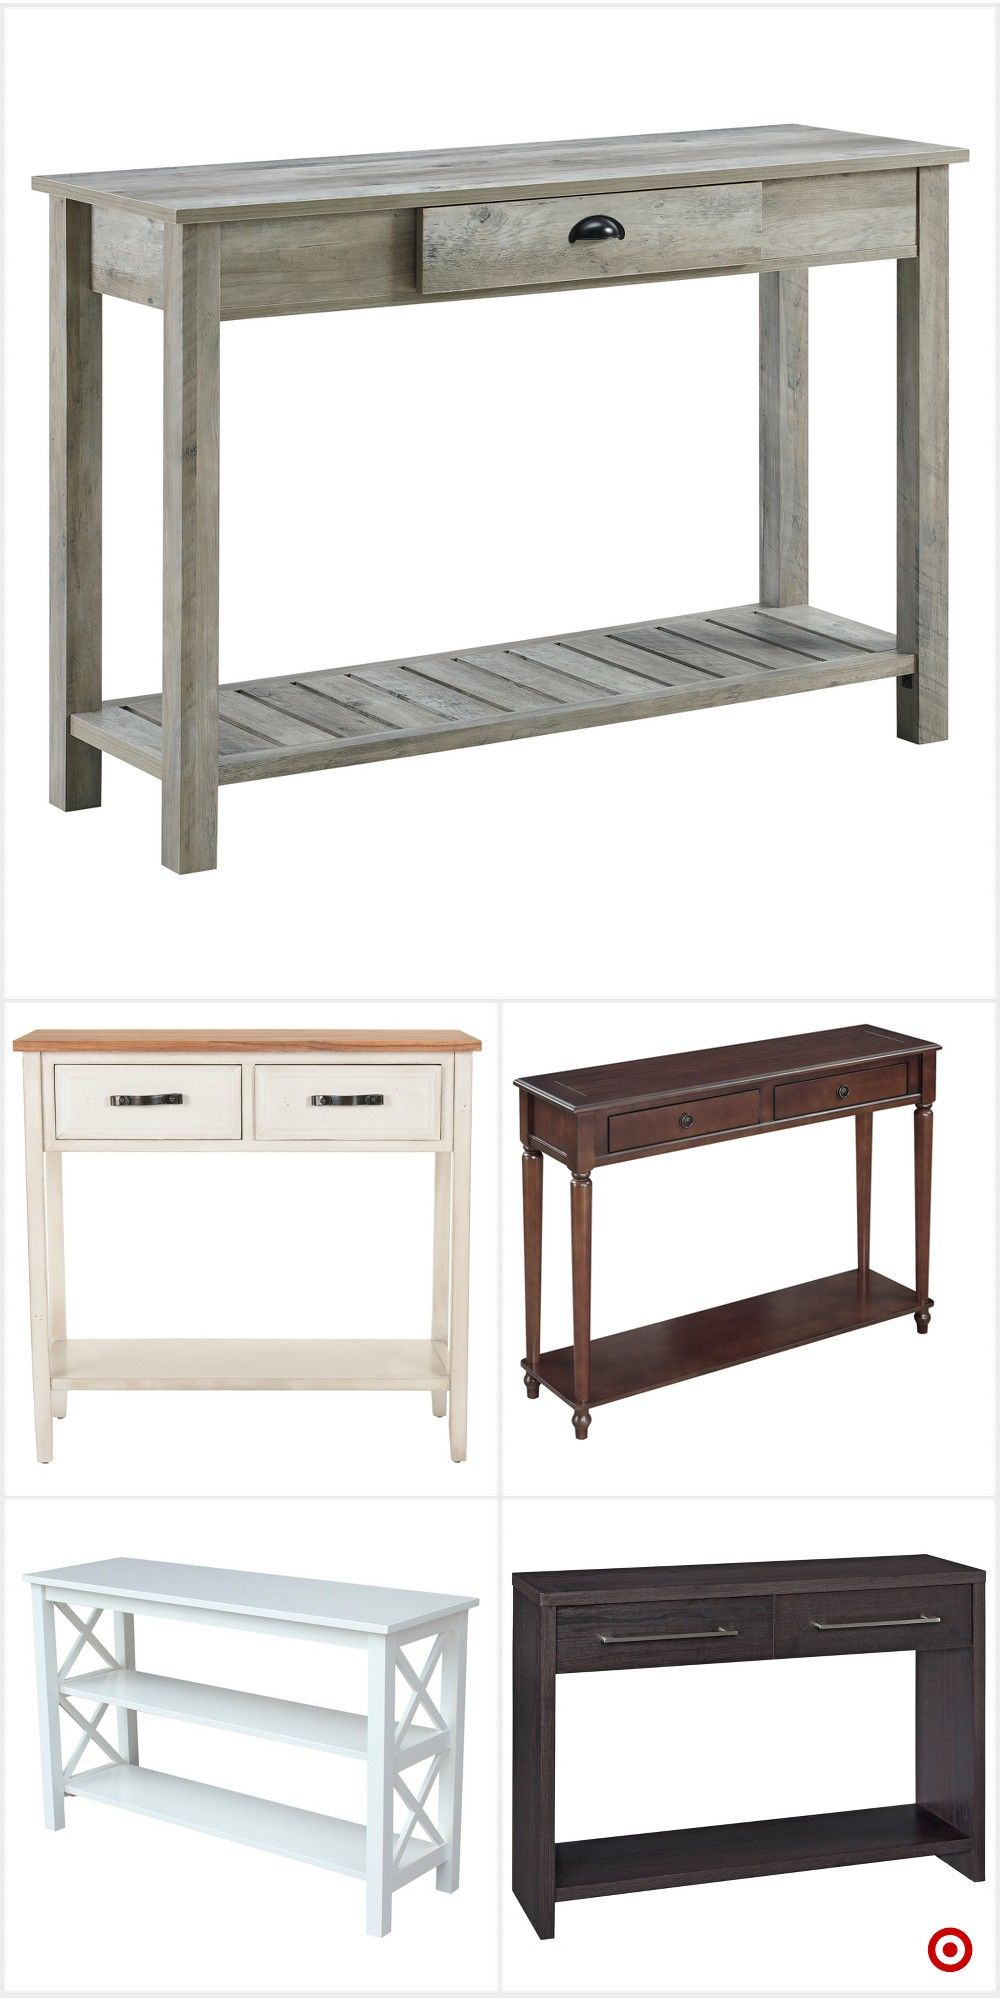 Shop Target For Sofa Table You Will Love At Great Low Prices Free Shipping On Orders Of 35 Or Free Same Day Pick Up In Store Home Decor Furniture Home